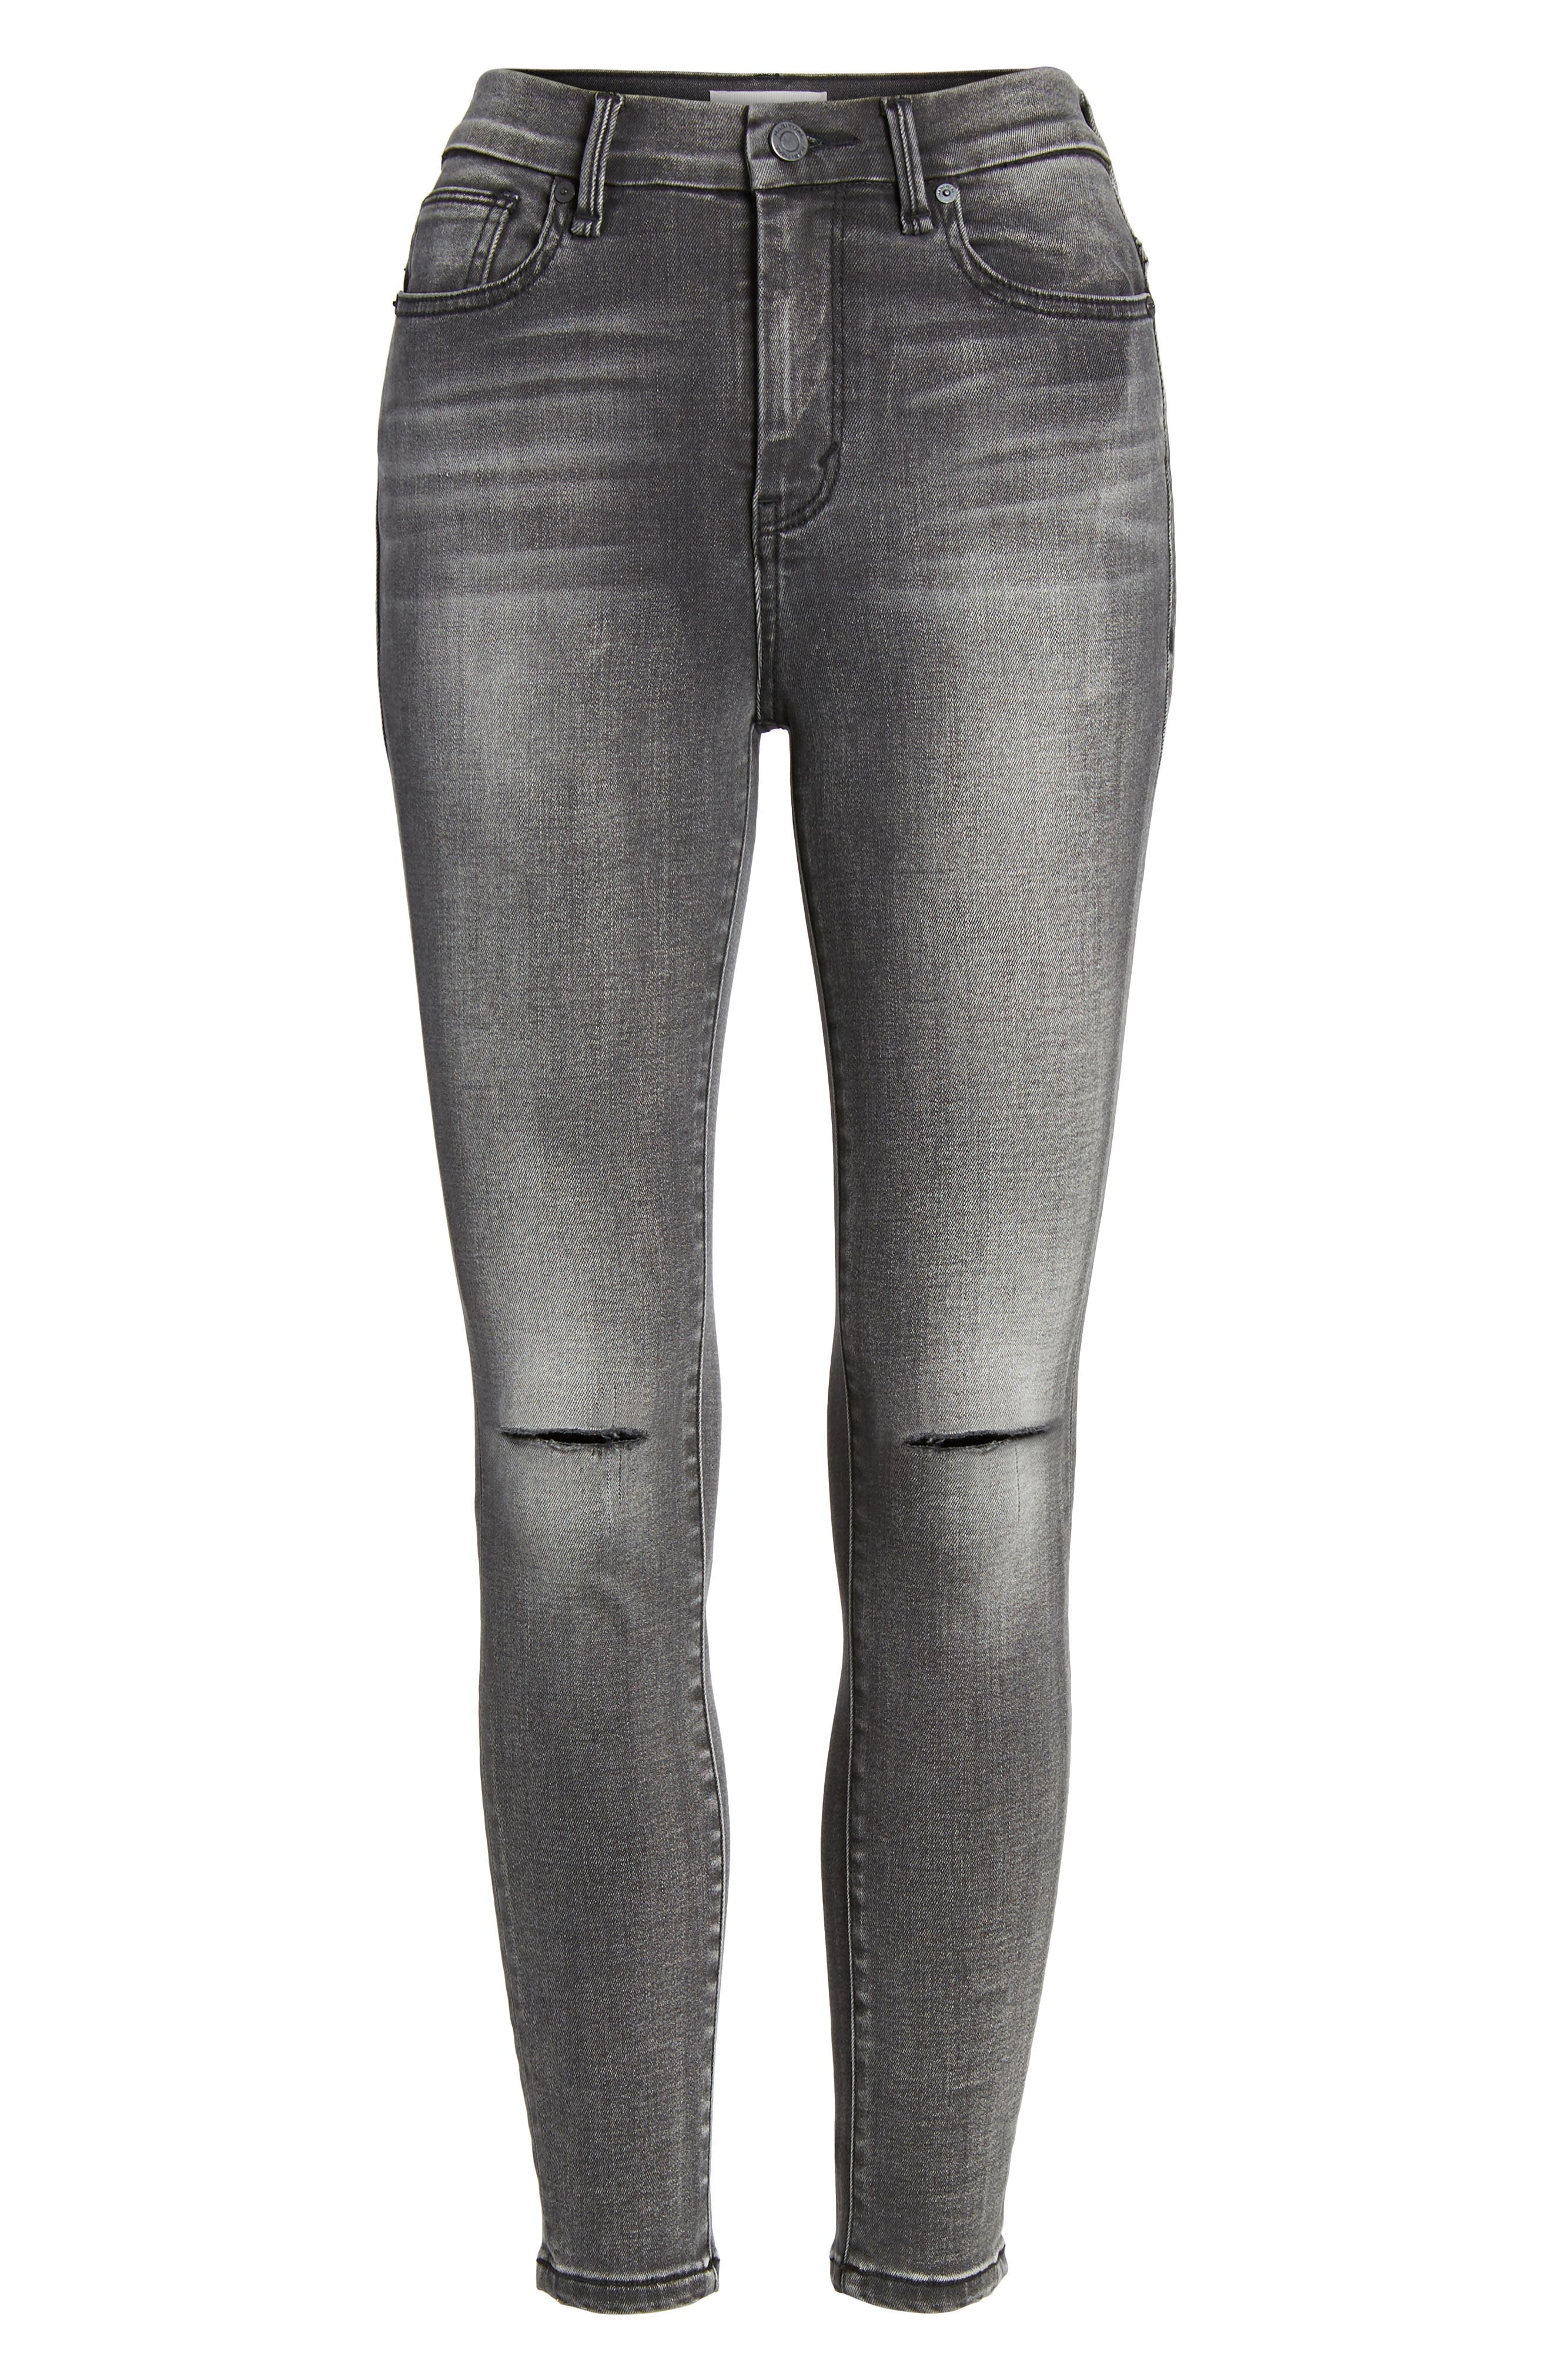 Cressa High Rise Ankle Skinny Jeans,                             Alternate thumbnail 7, color,                             Obsidian